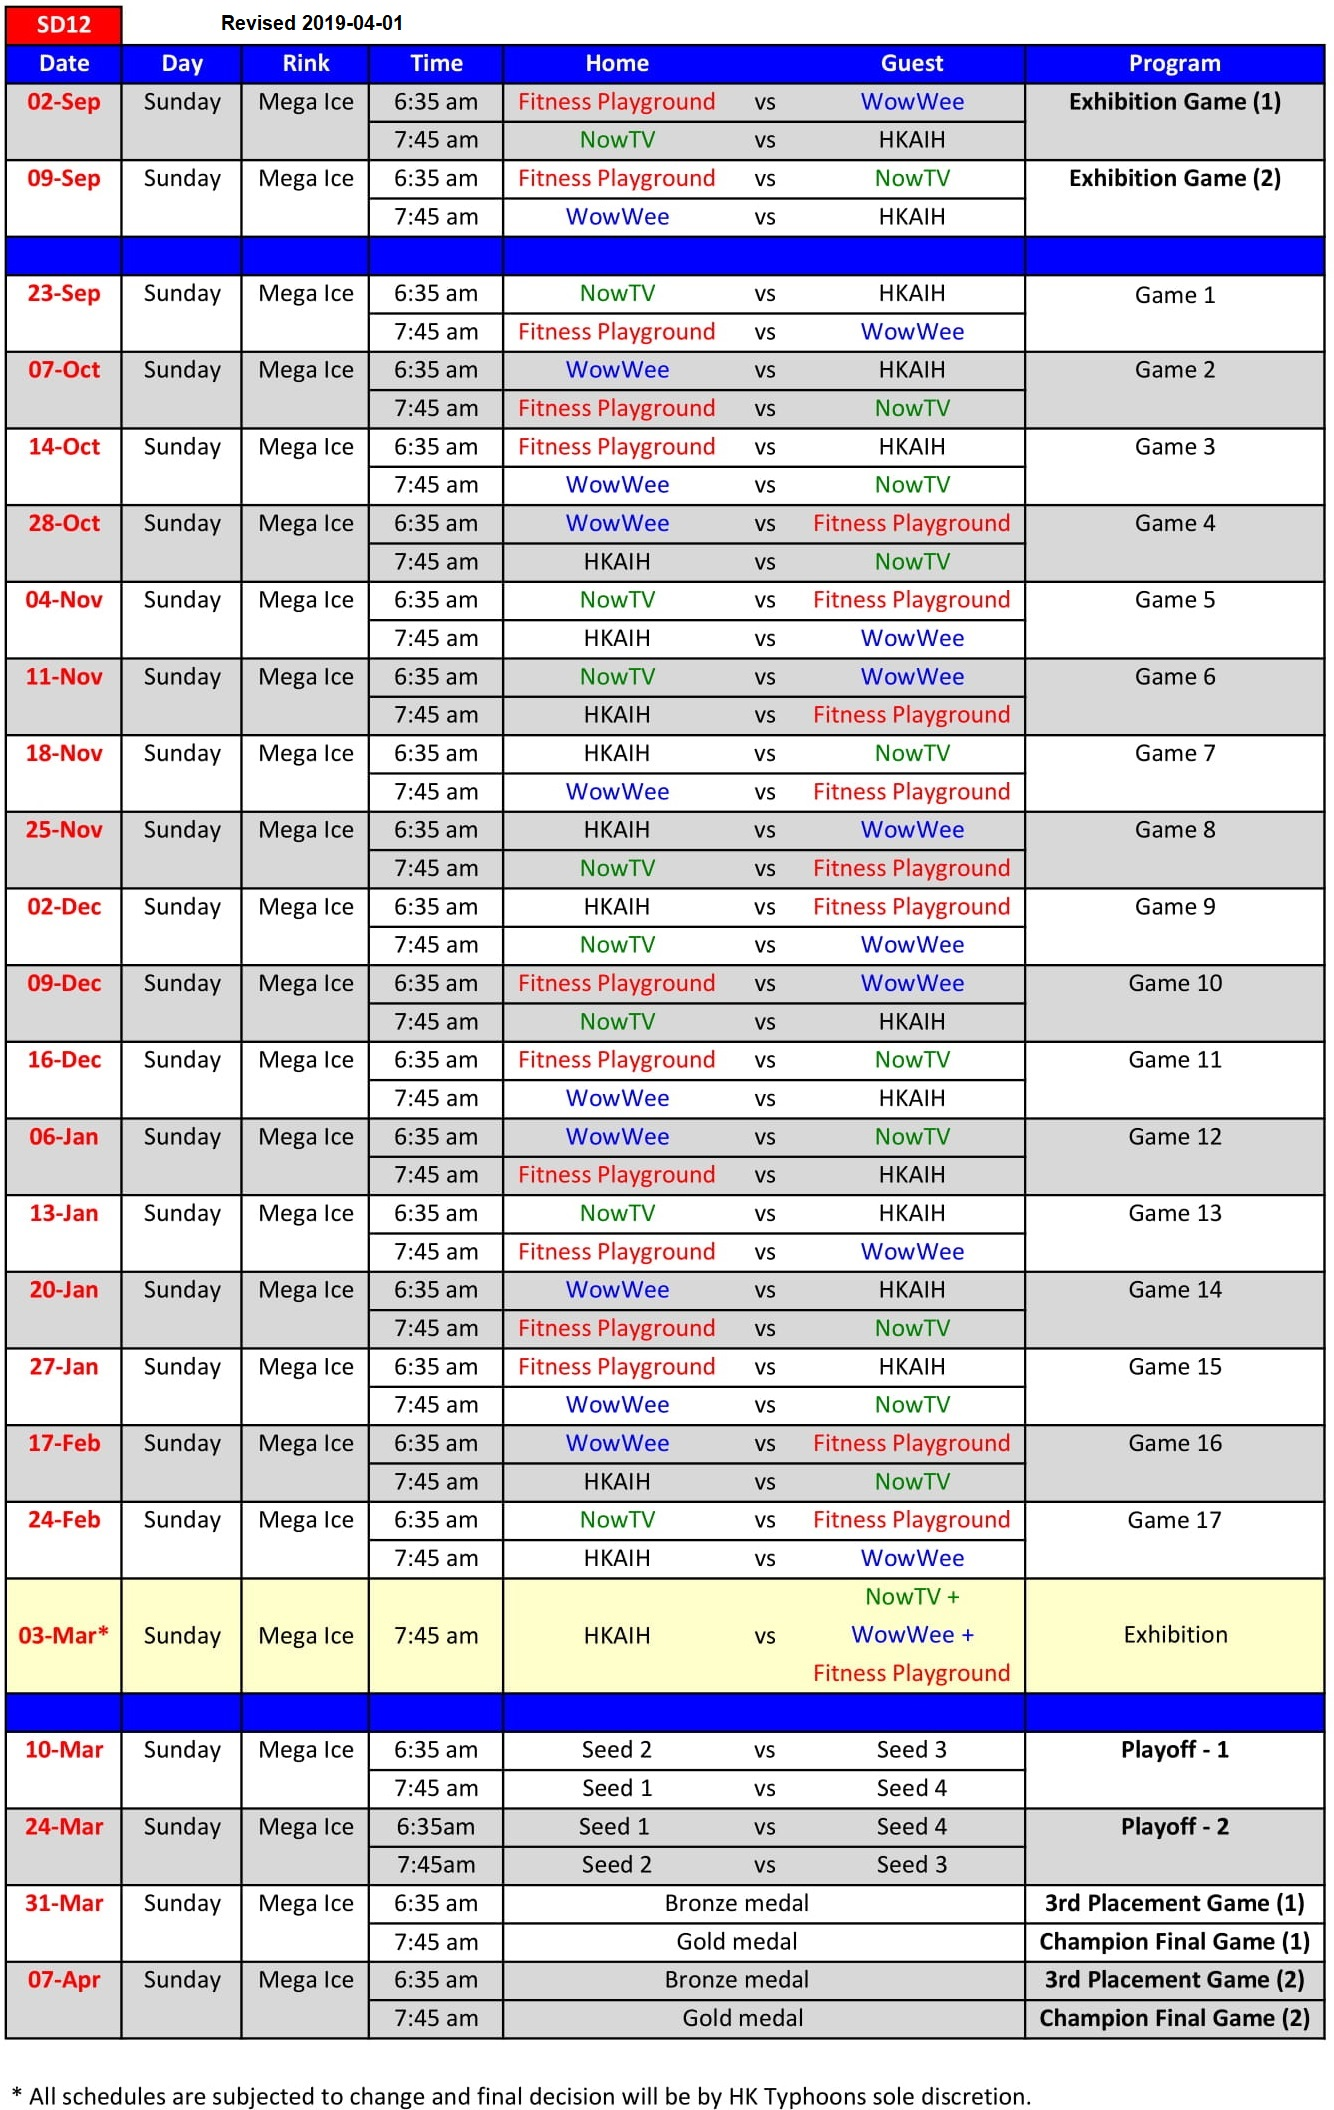 Game Schedule 20190213 SD12 R1 PDF